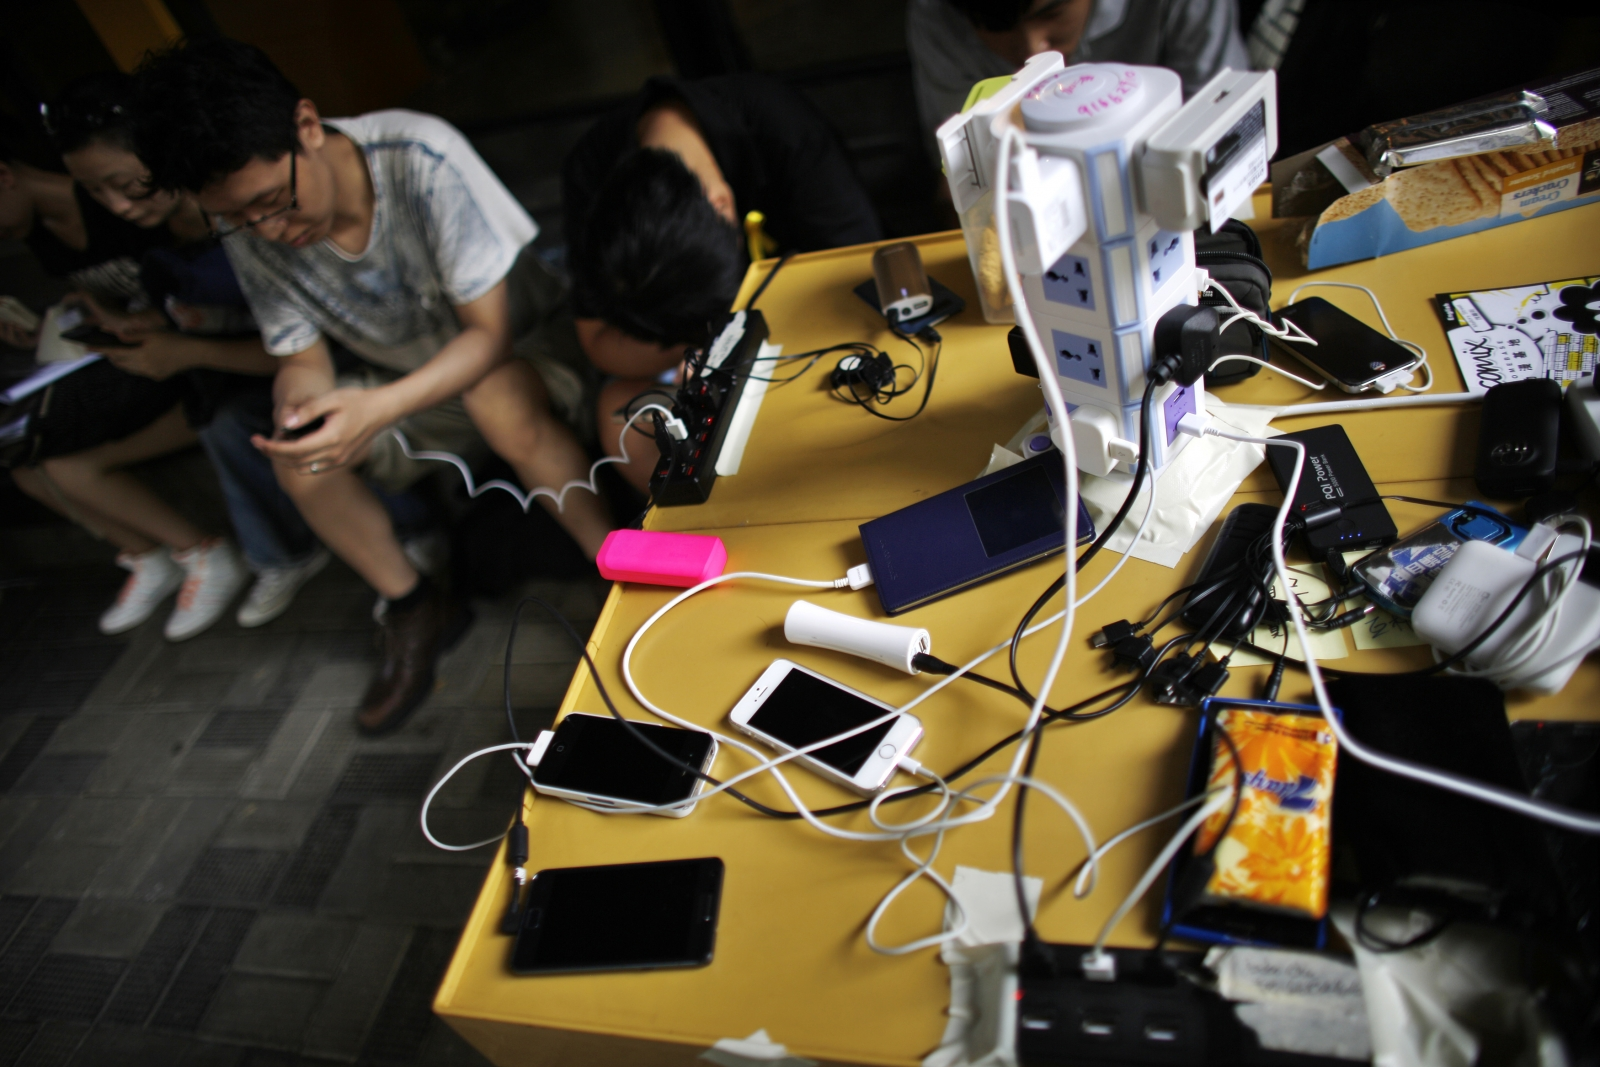 Sophisticated iOS Malware Targets Hong Kong Protesters